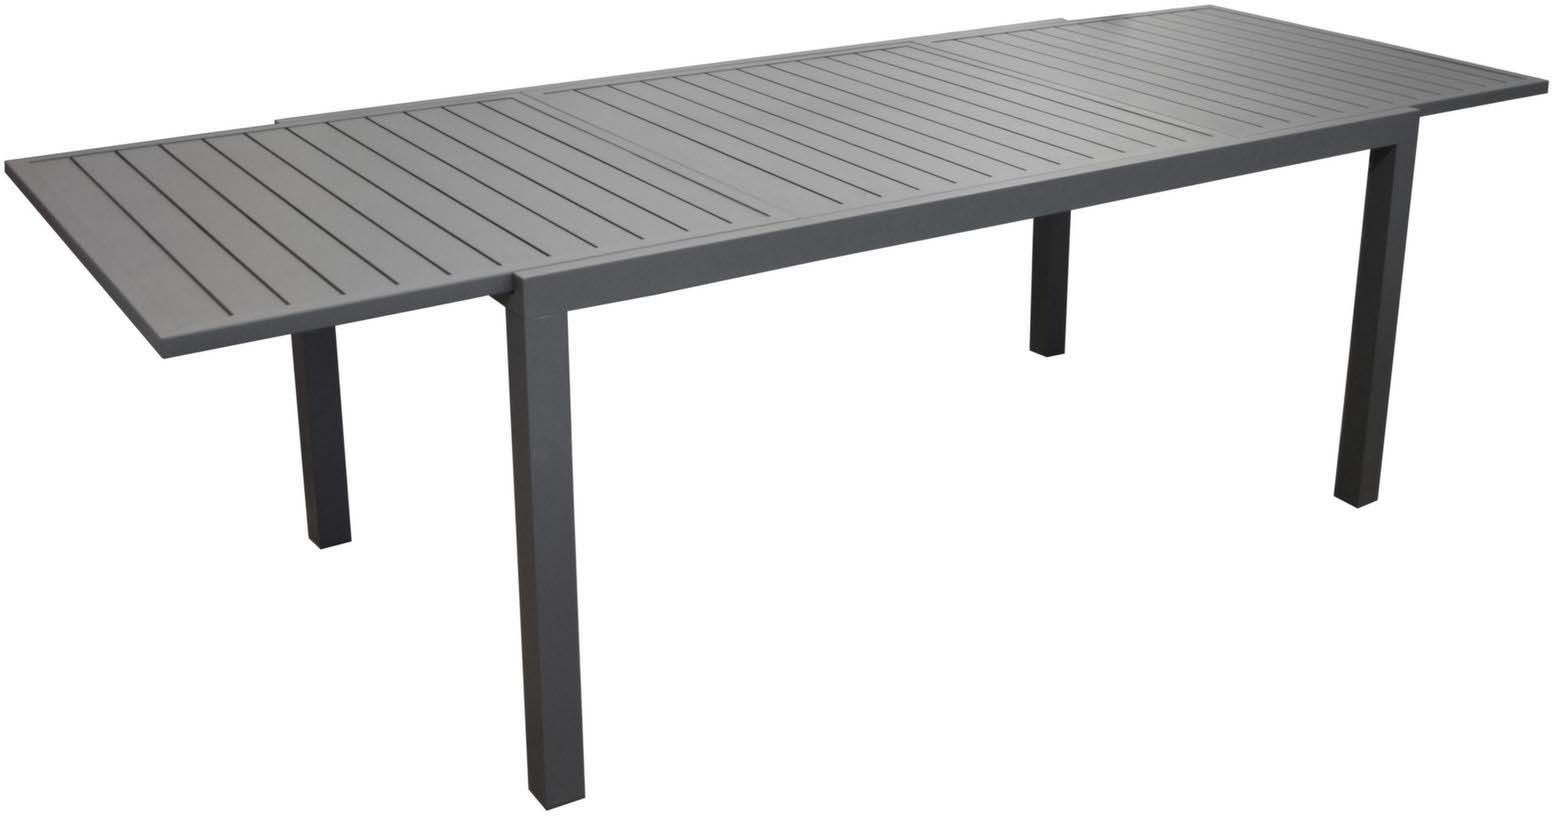 table en aluminium avec allonge solem 268 cm gris. Black Bedroom Furniture Sets. Home Design Ideas